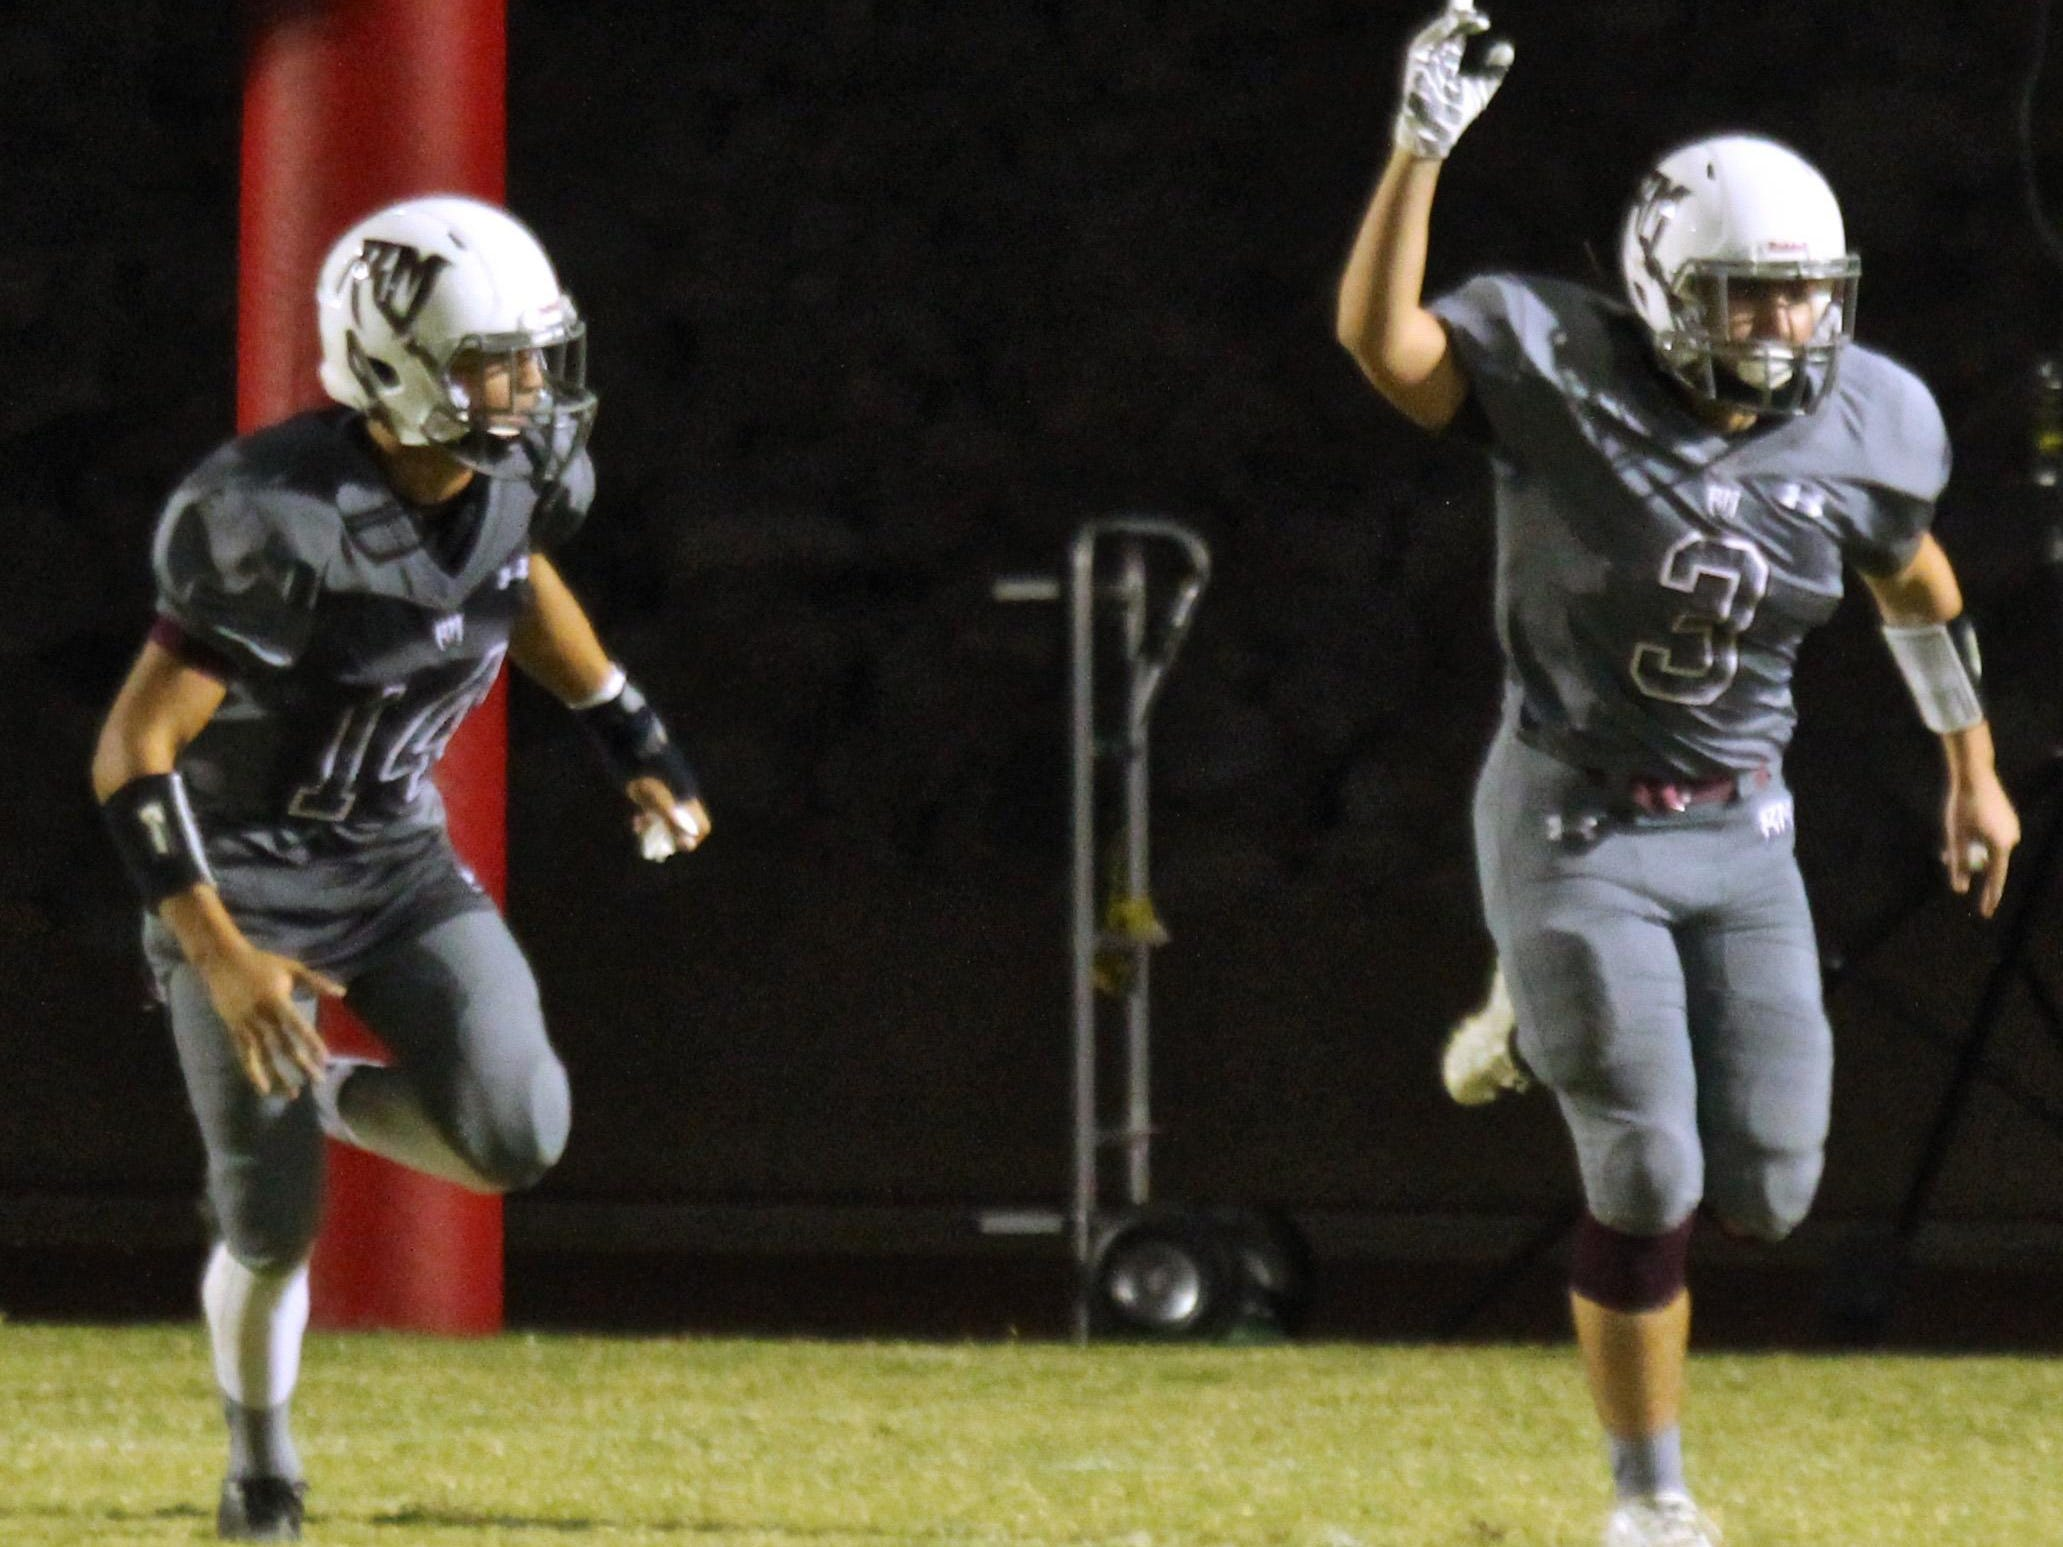 Rattlers' Sergio Julian III (3) celebrates after his team recovered a fumble against Tahquitz.